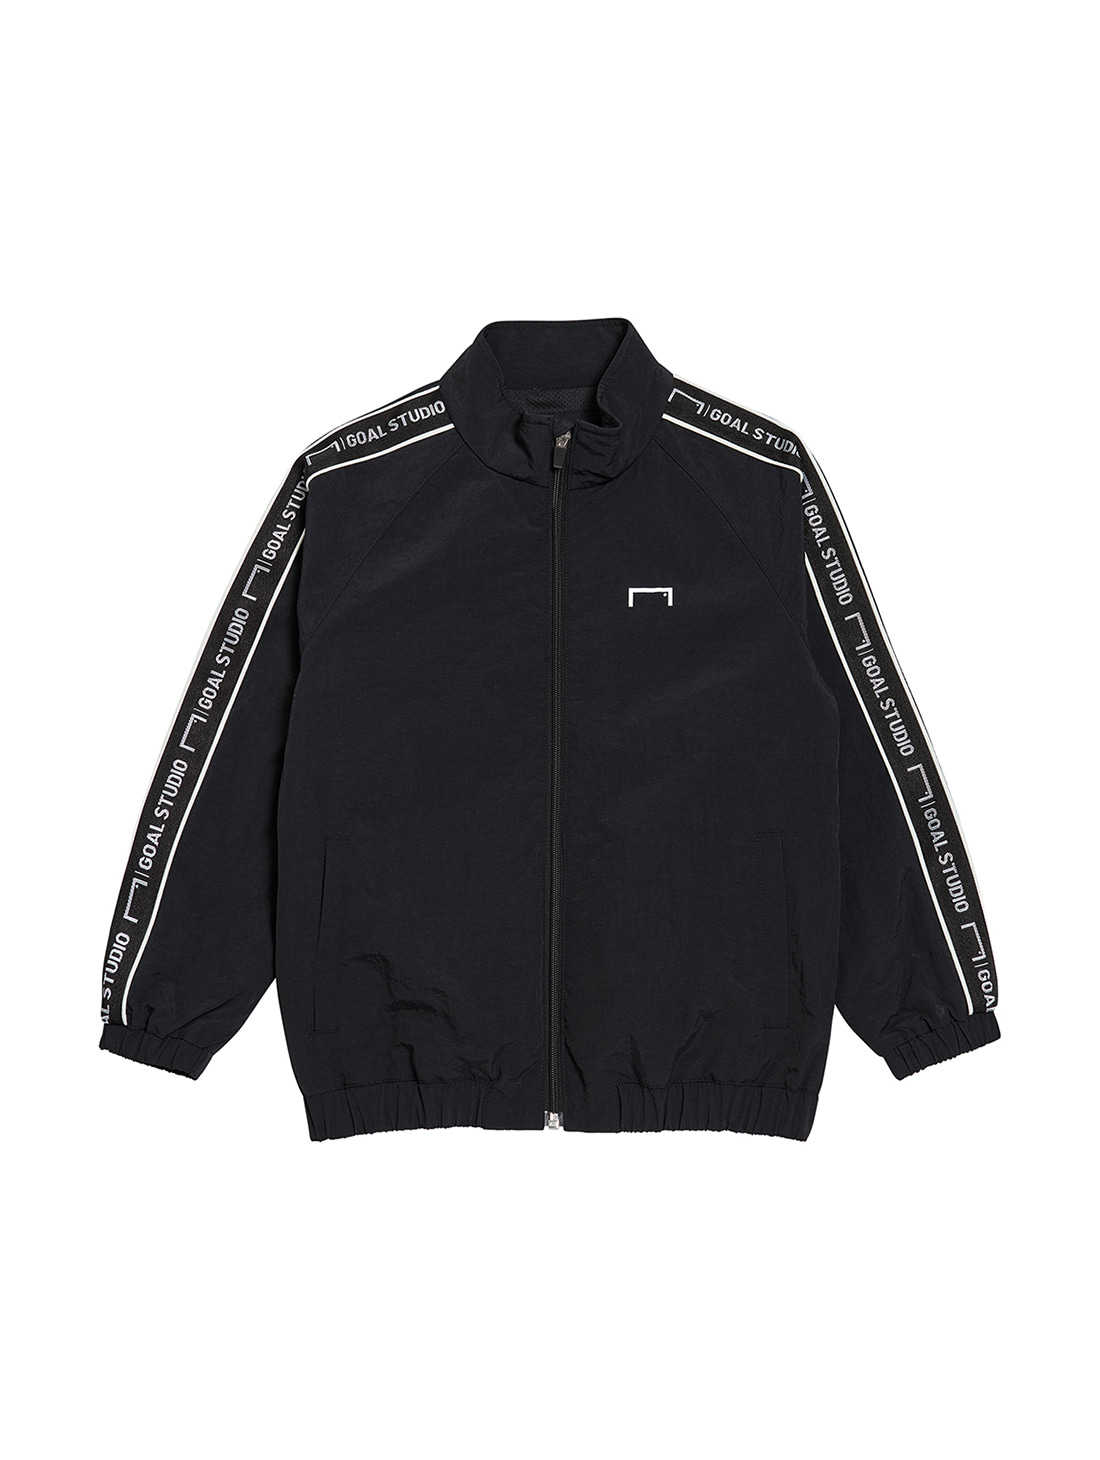 (KIDS) SMALL LOGO TRACK JACKET - BLACK